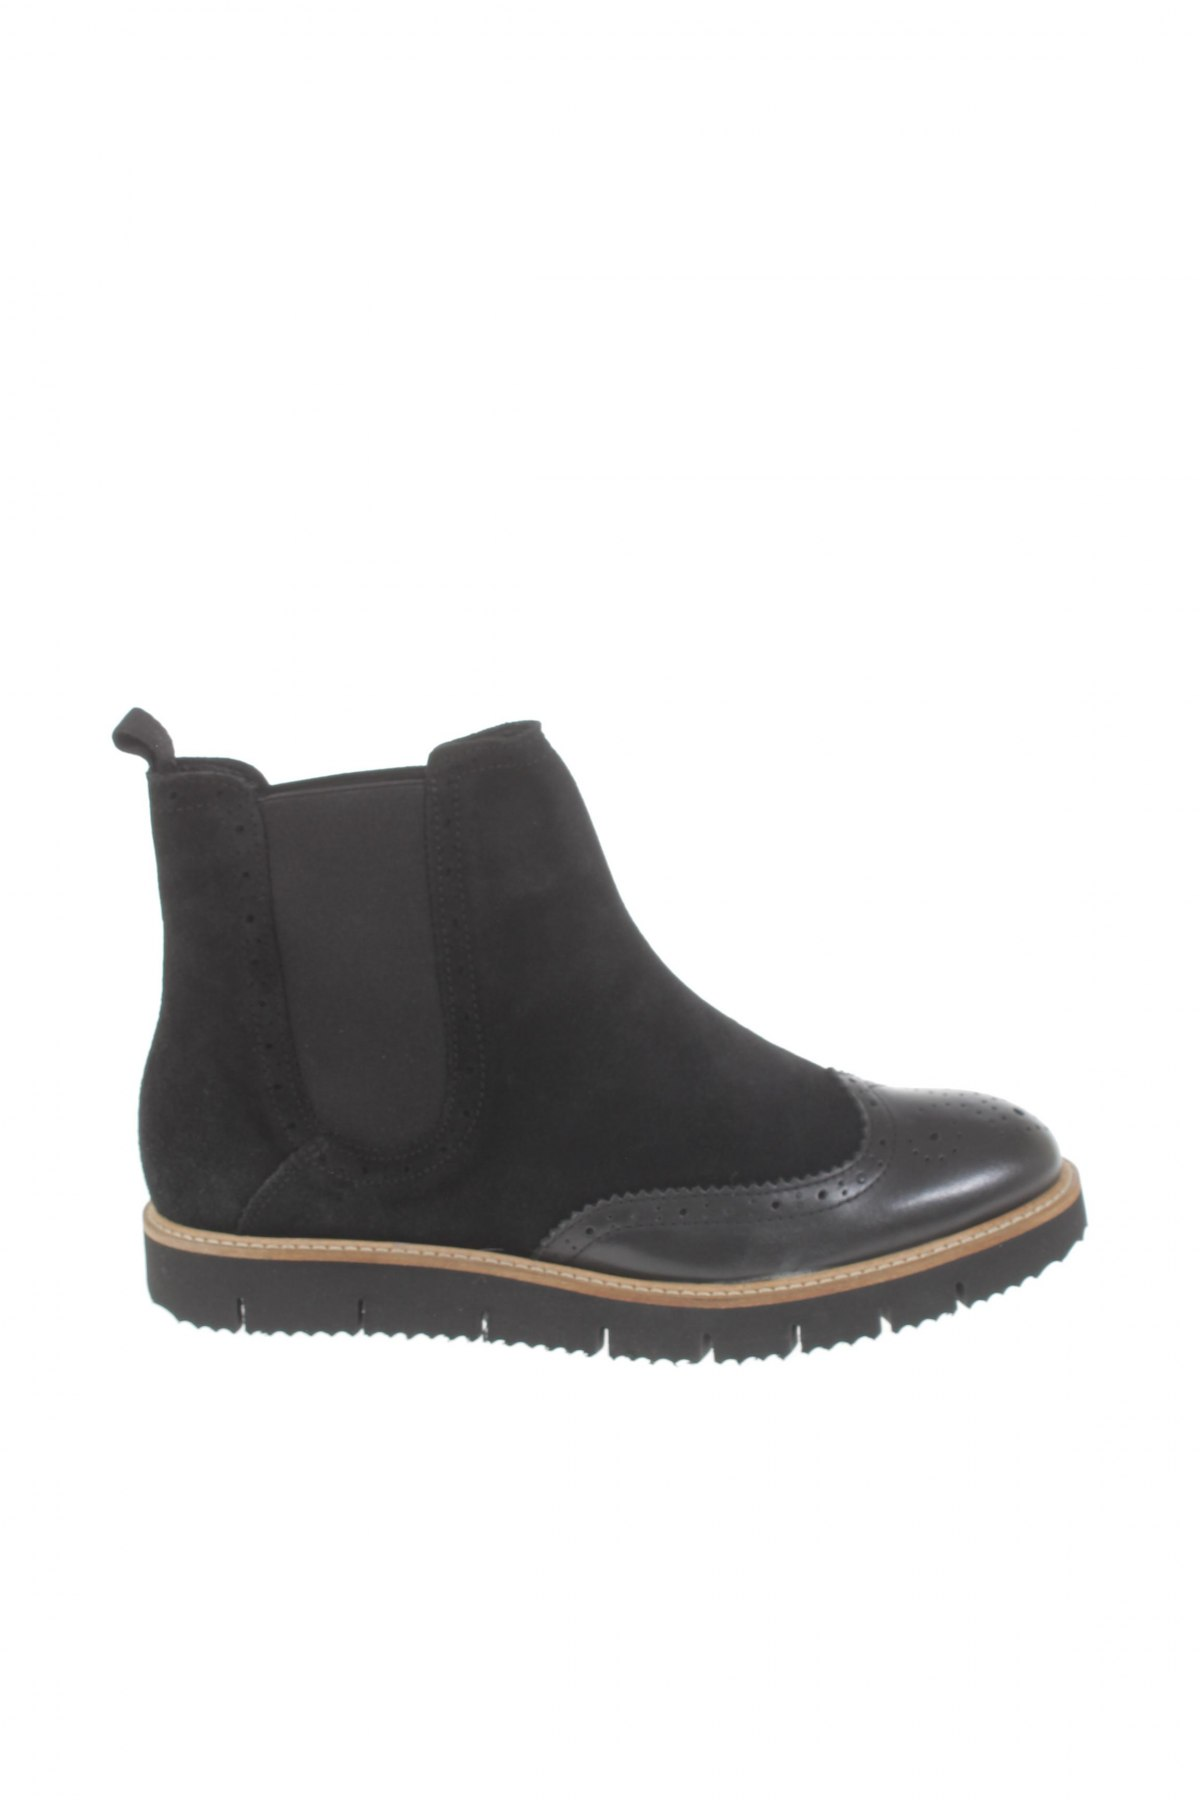 Women's ankle boots Zign